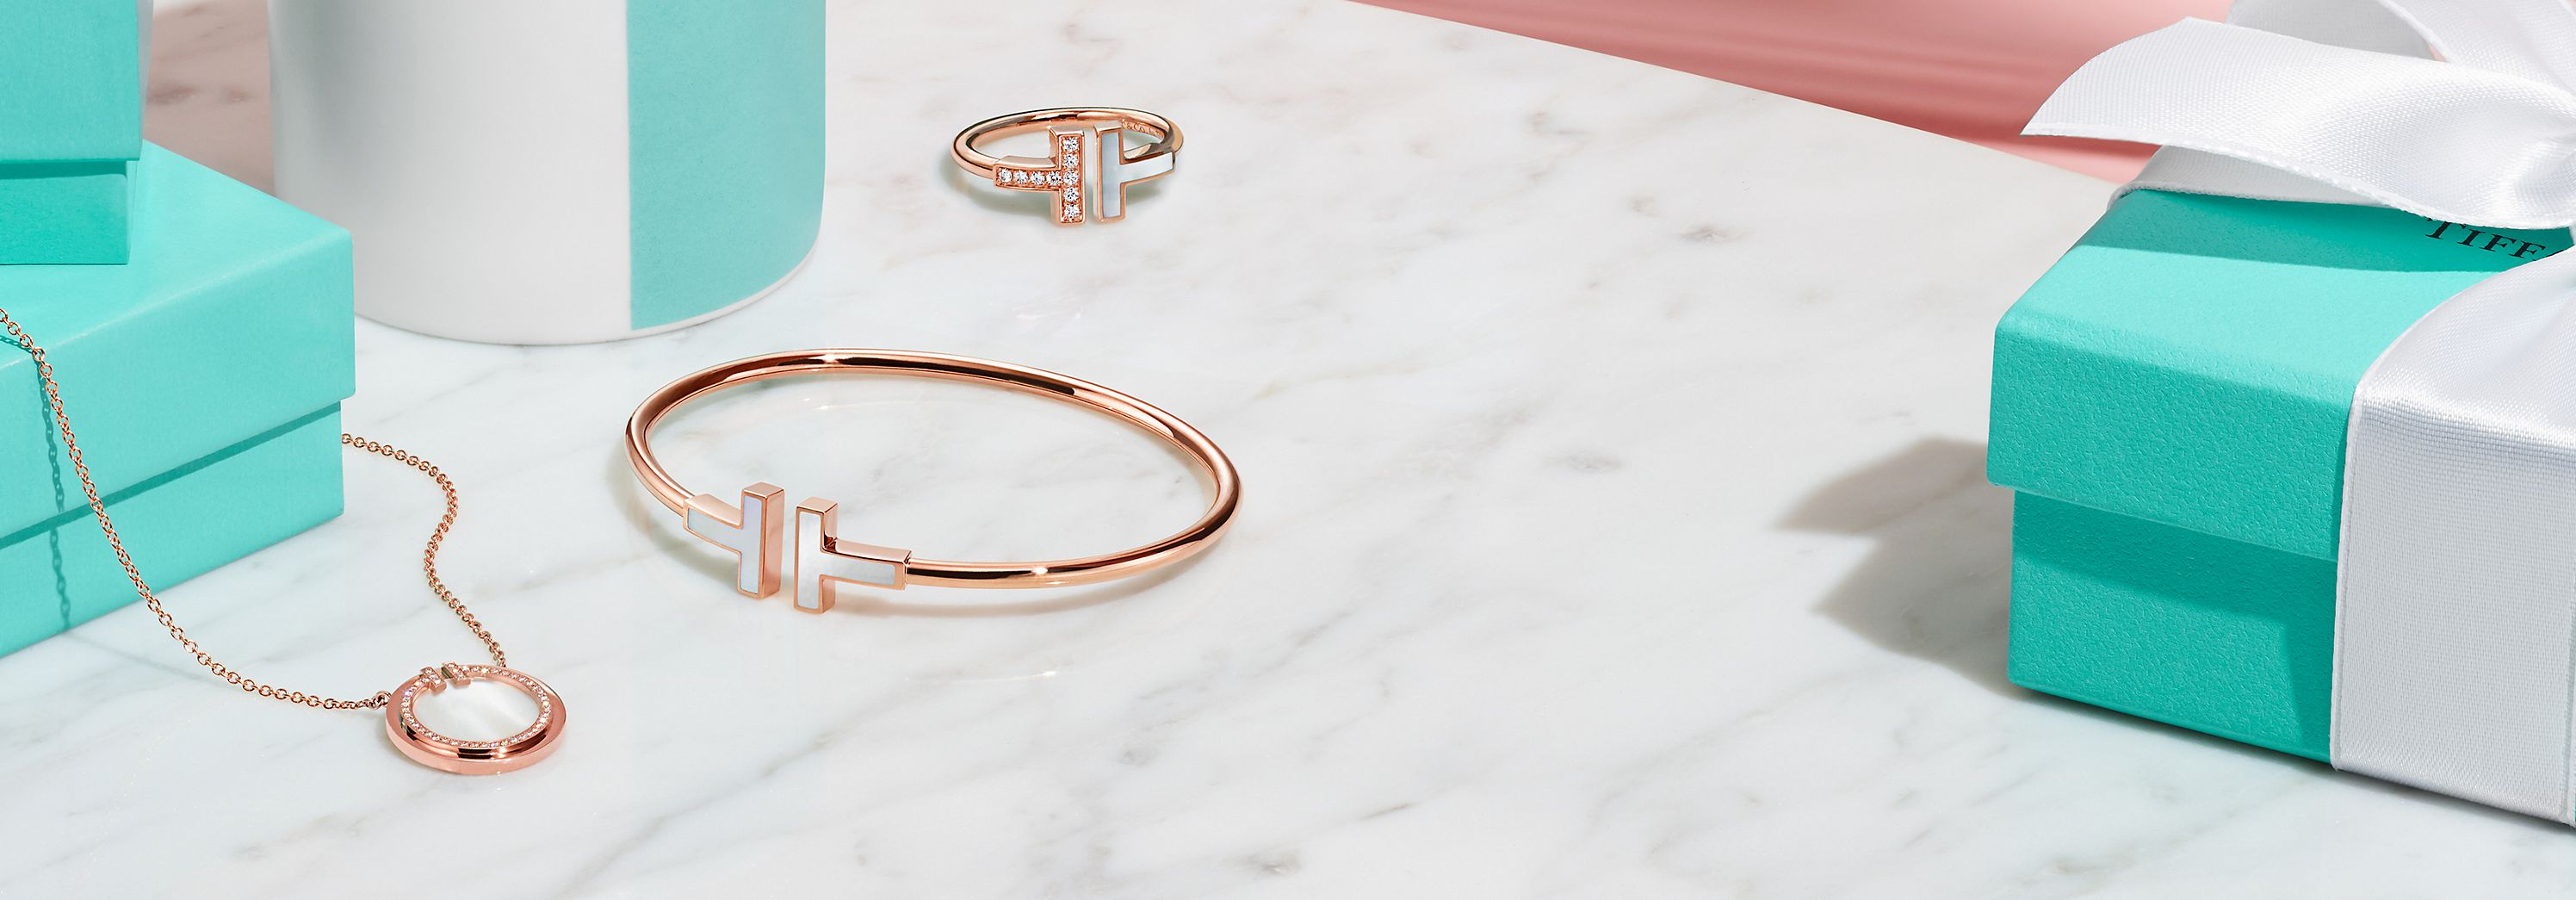 Shop Tiffany & Co. Valentine's Day Gifts